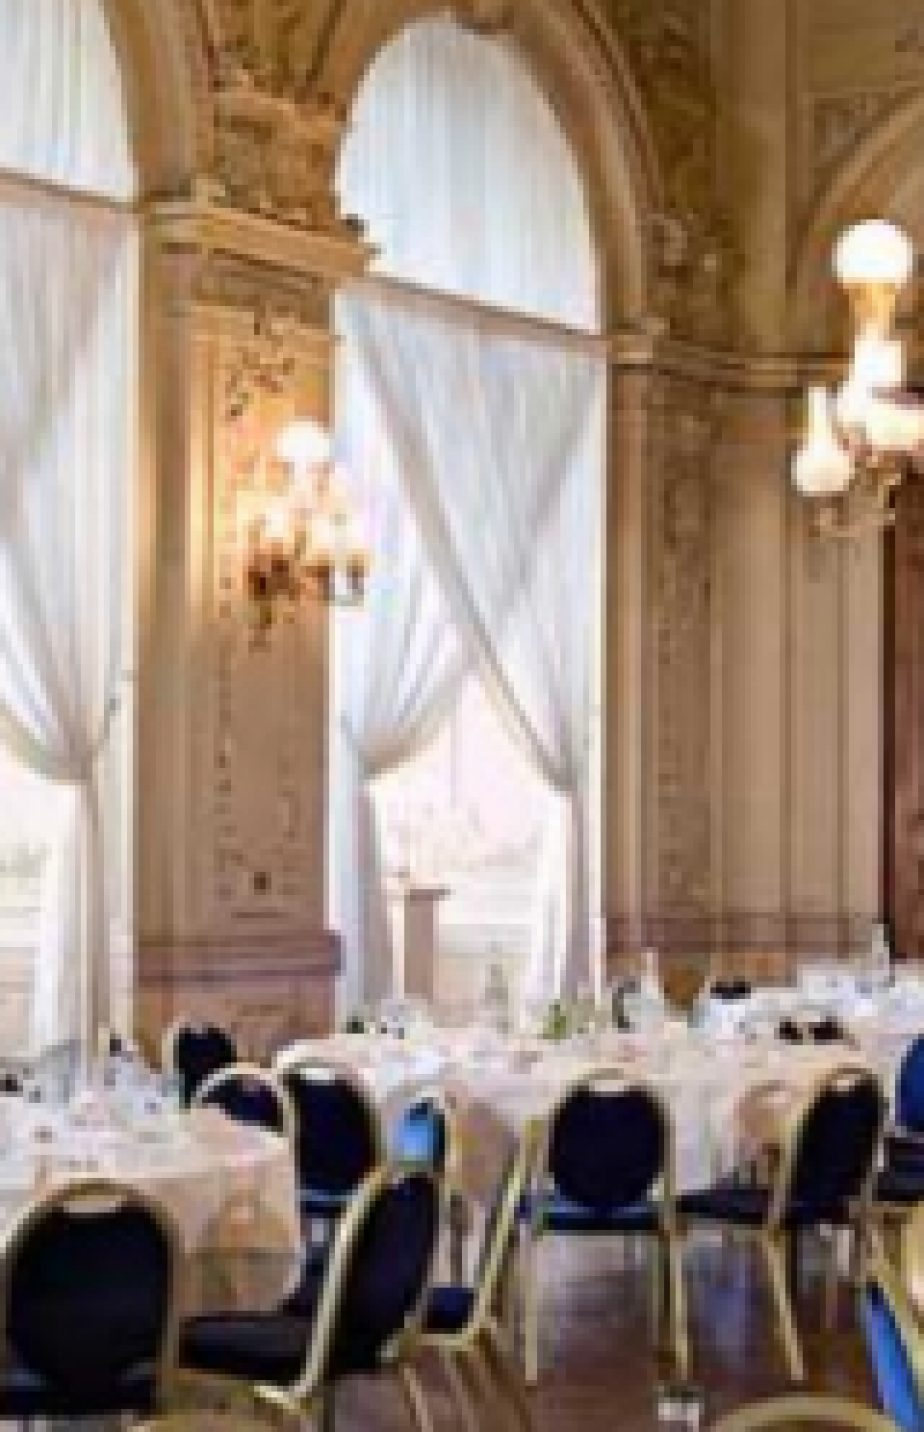 23 January 2016 – Reception, Lunch and AGM at the Westminster Hotel, Nice